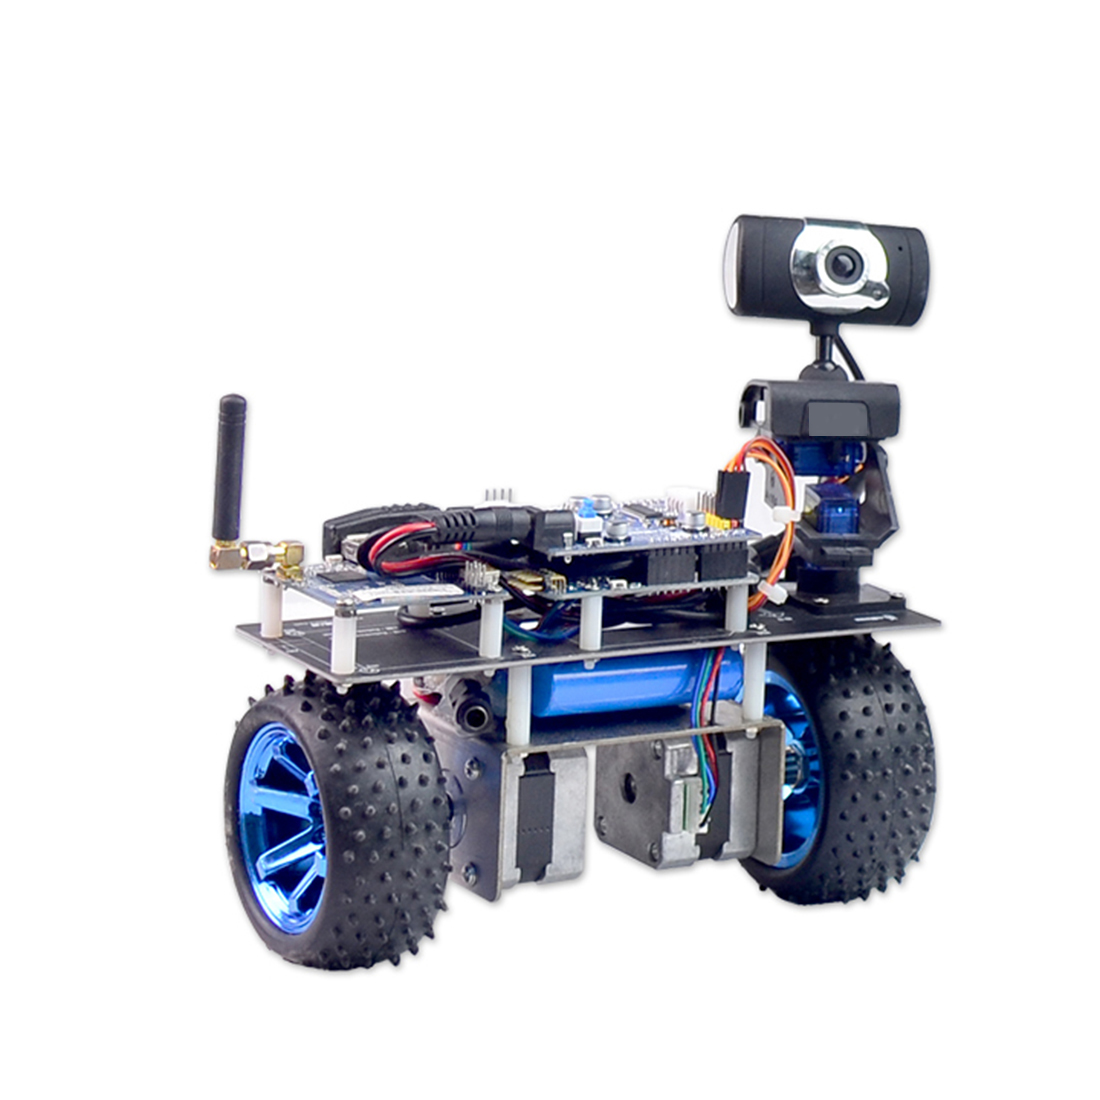 DIY Stem Programmable Intelligent Balance Car WiFi Video Robot Car Support iOS/Android APP PC Remote Control for STM32 1